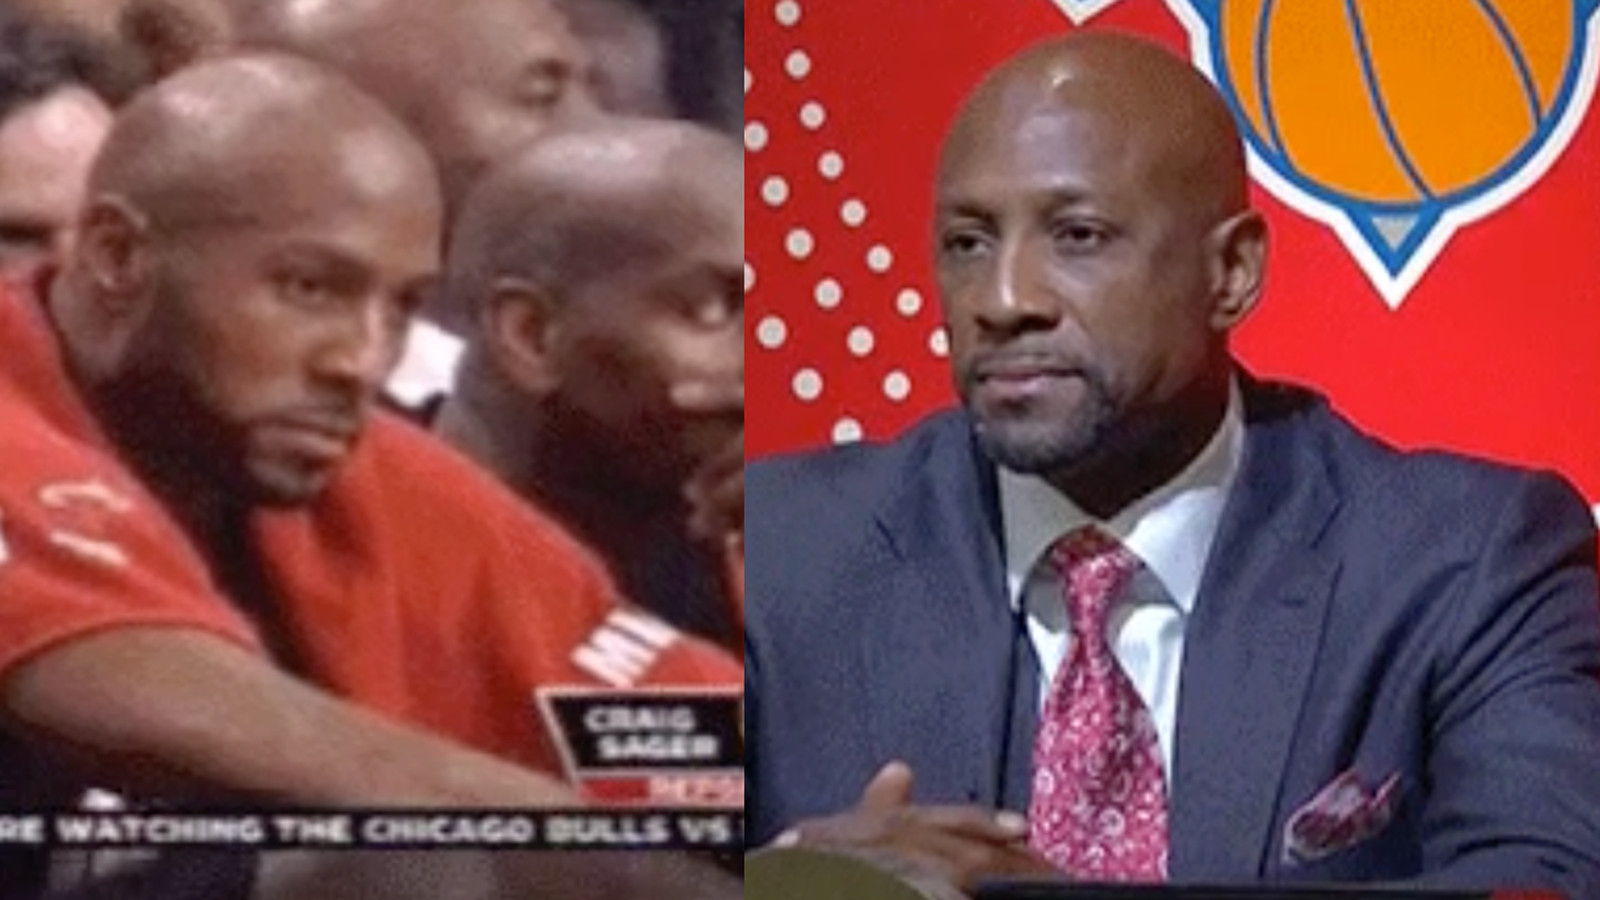 Alonzo Mourning is still shaking his head in 2017 at the NBA draft